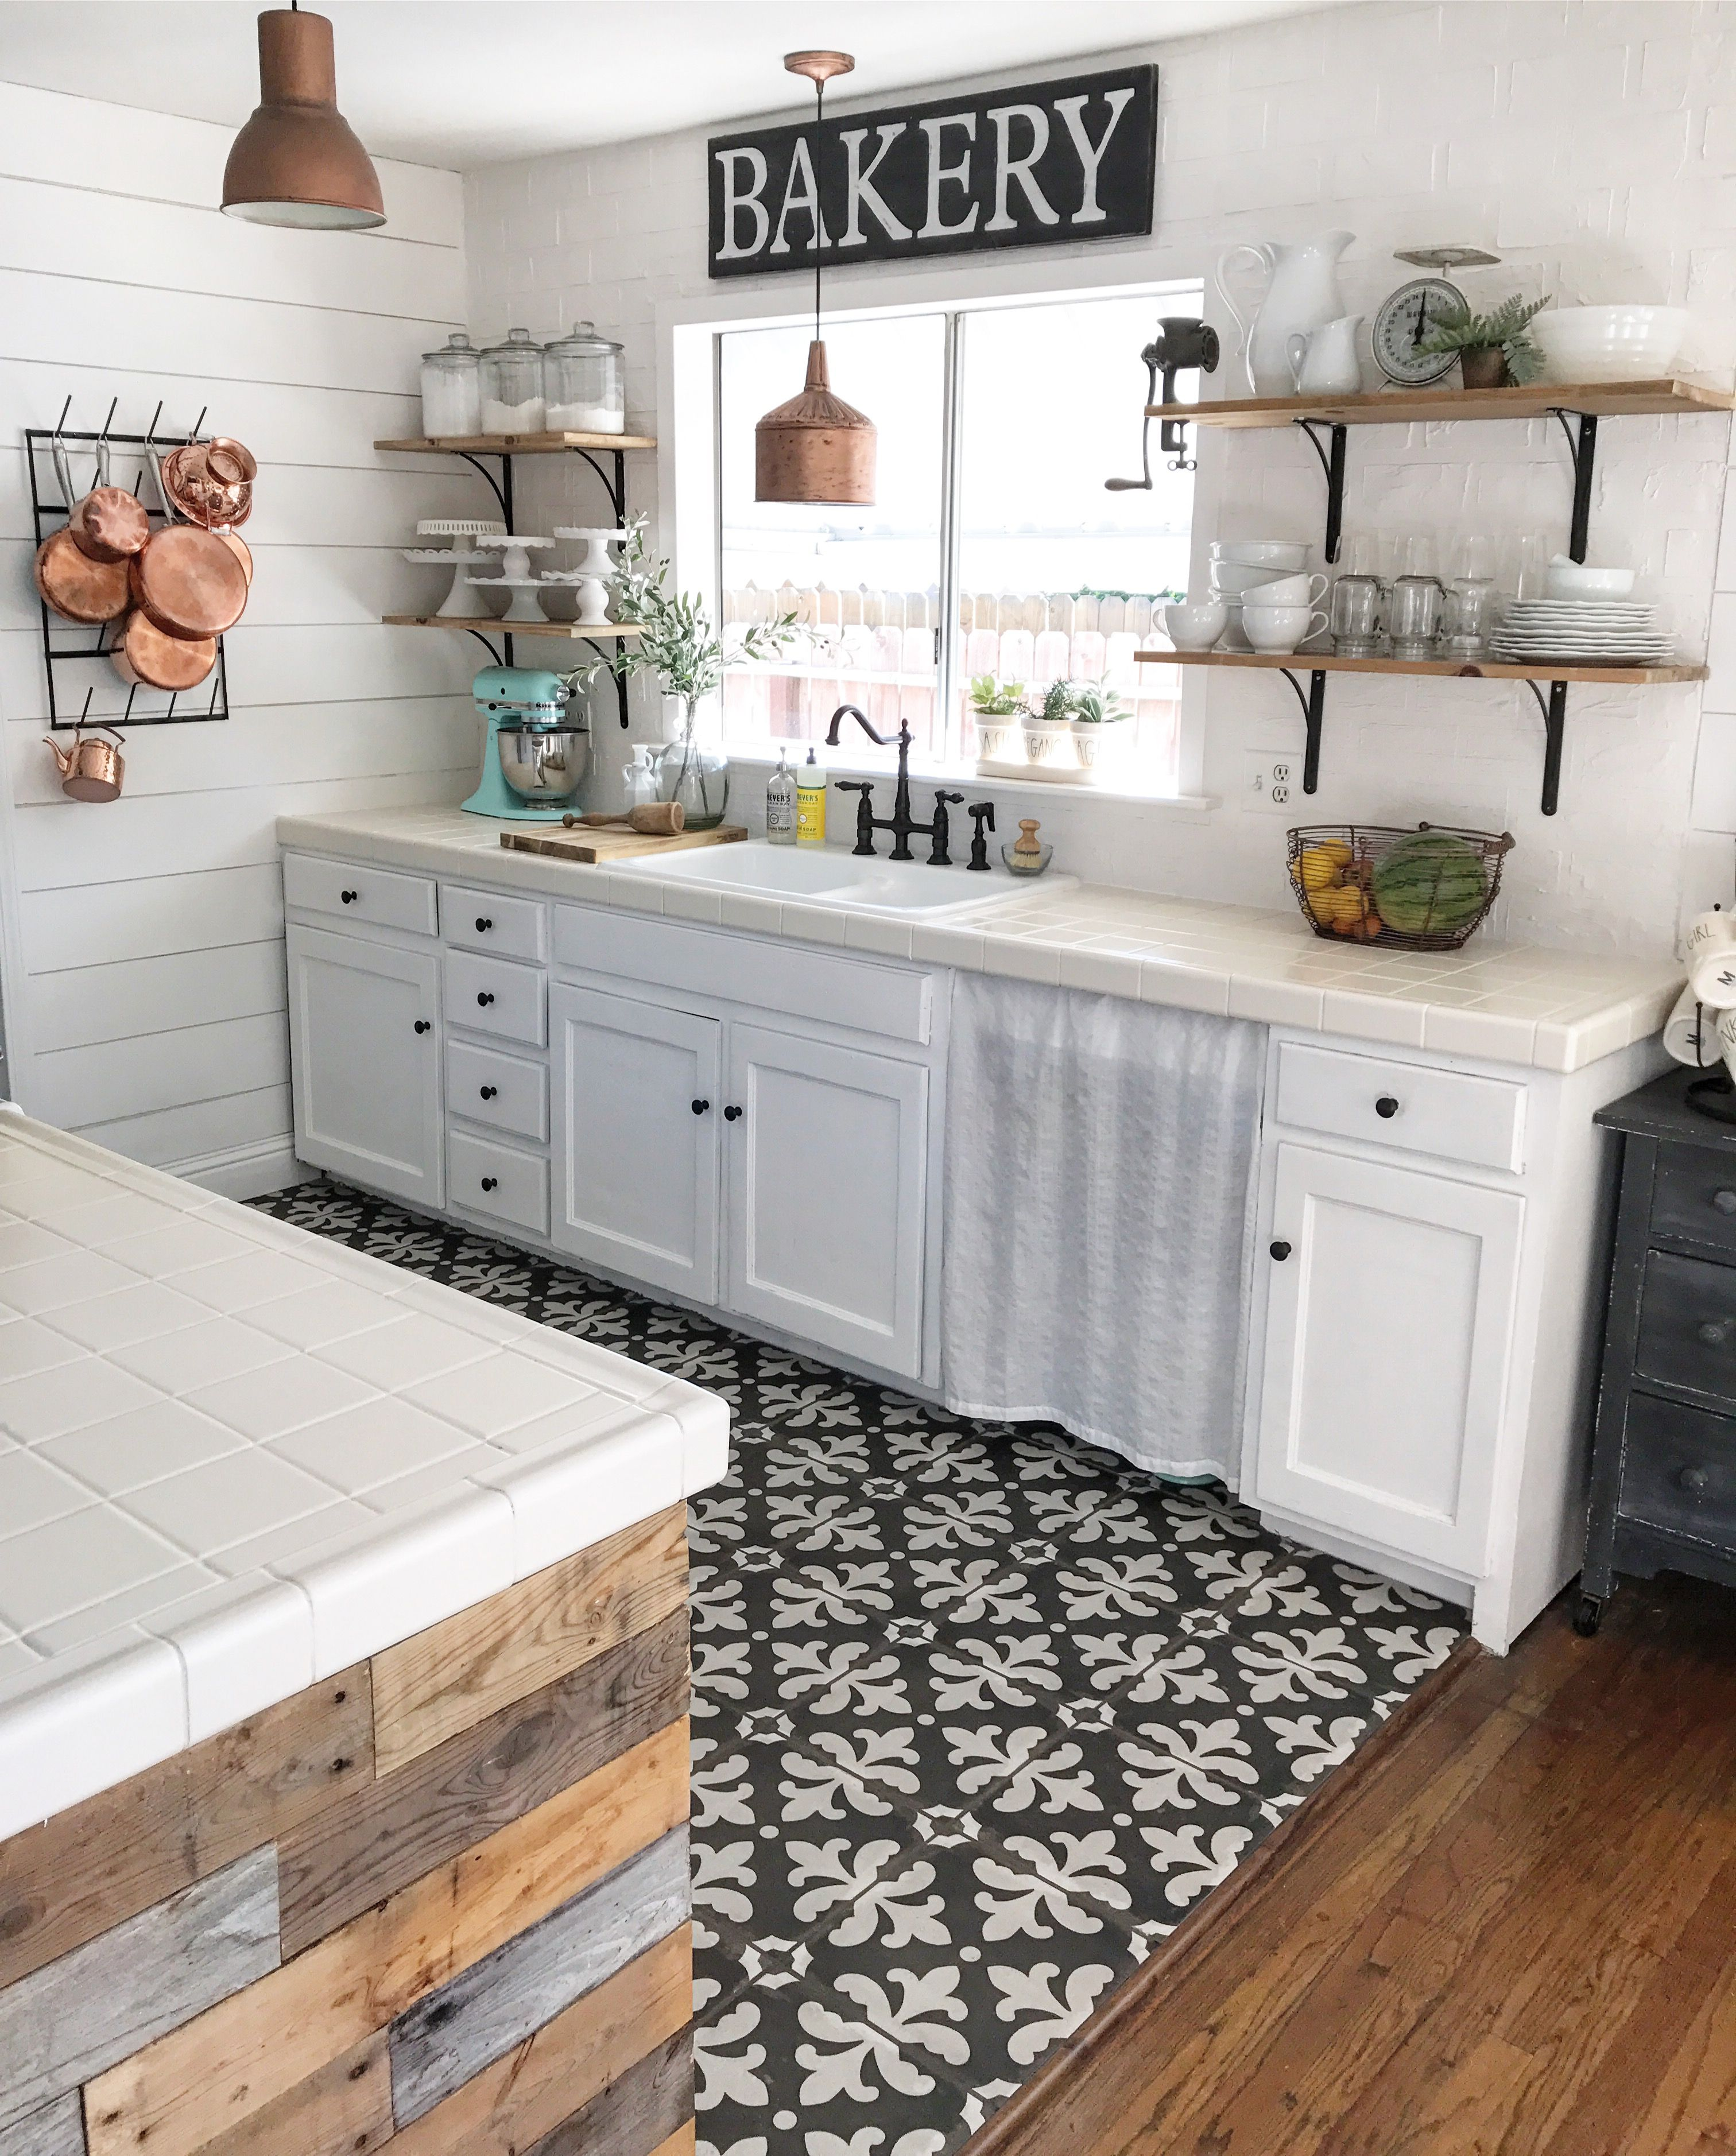 Black And White Kitchen Tiles: Black And White Tile. Copper Pans. Cottage Kitchen